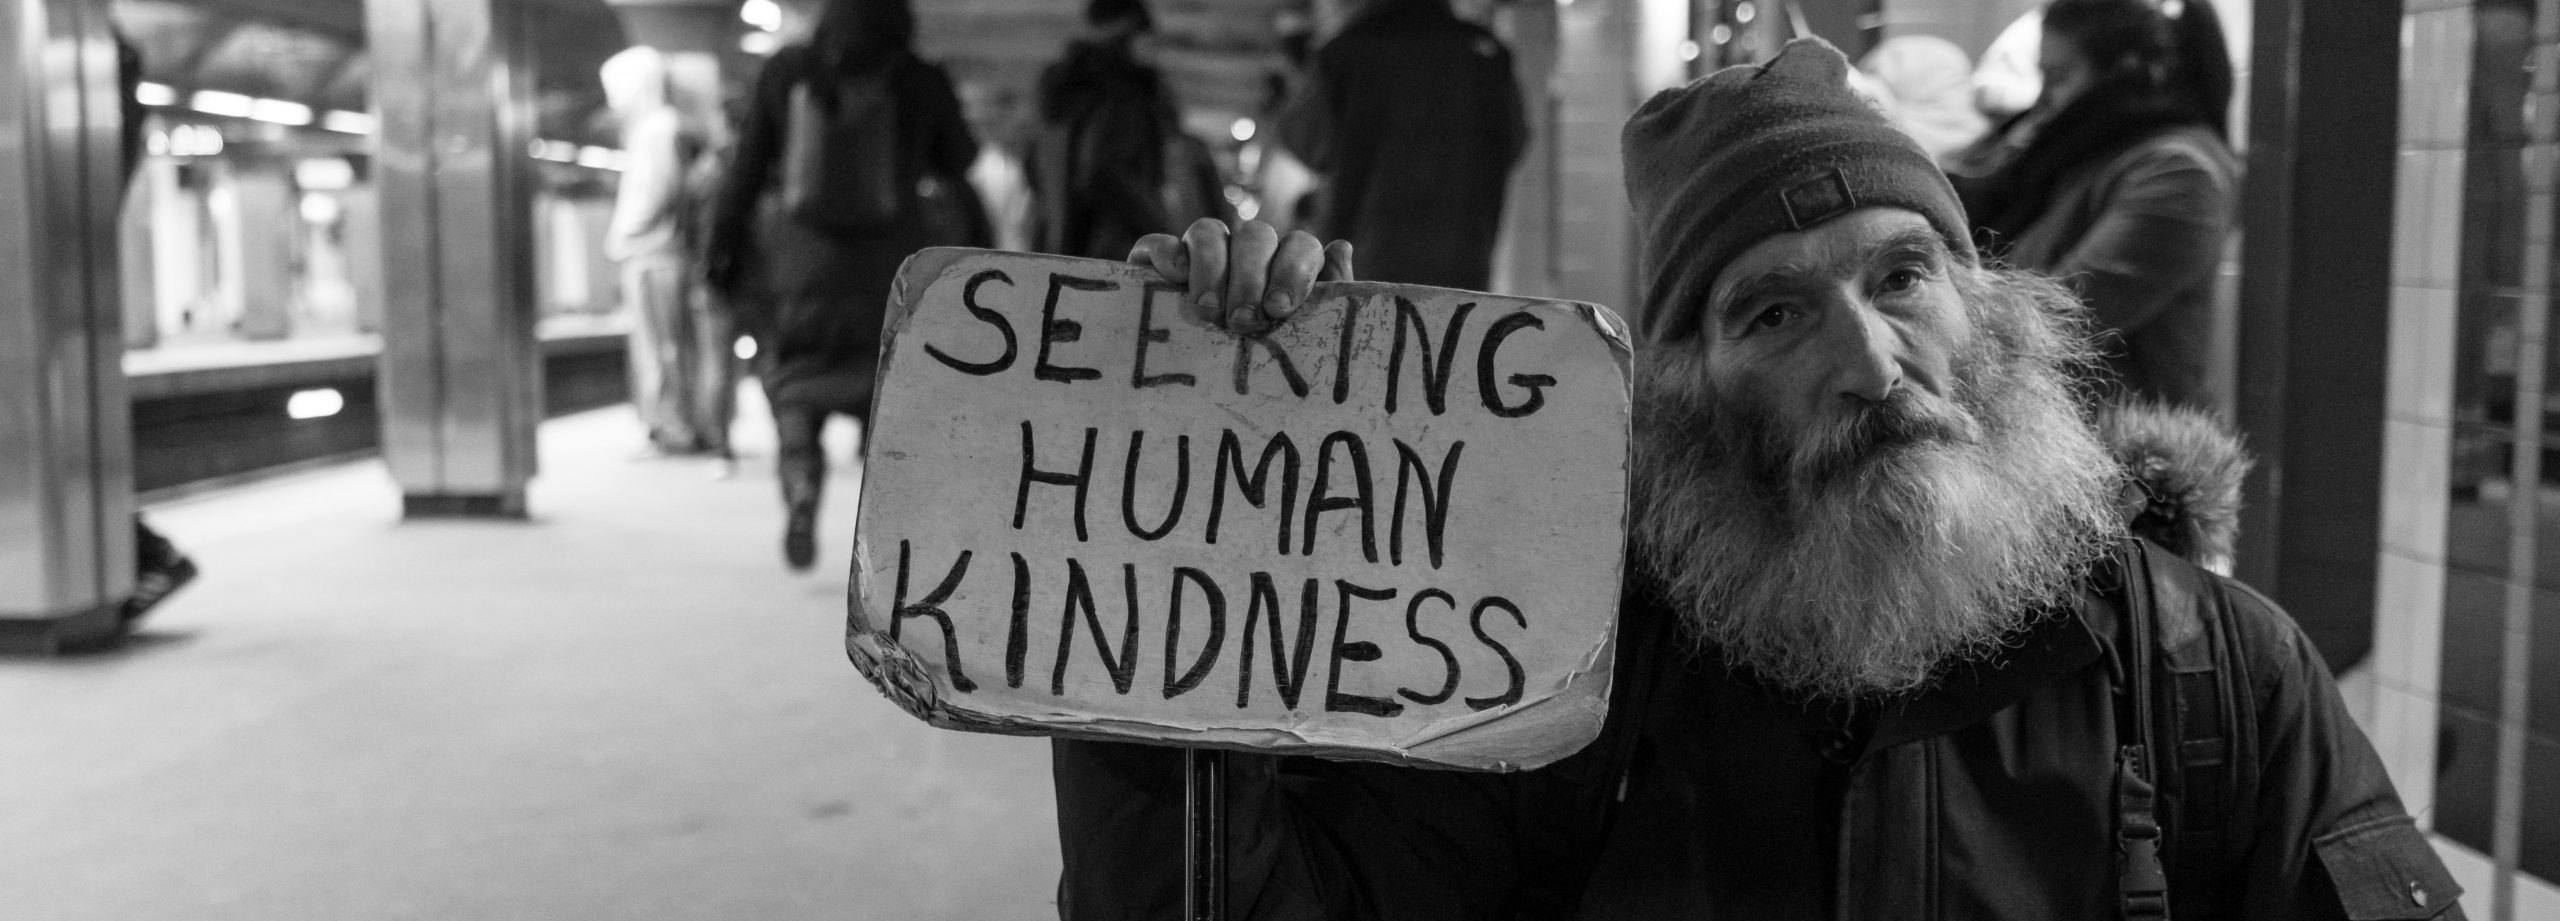 Helping the homeless by volunteering